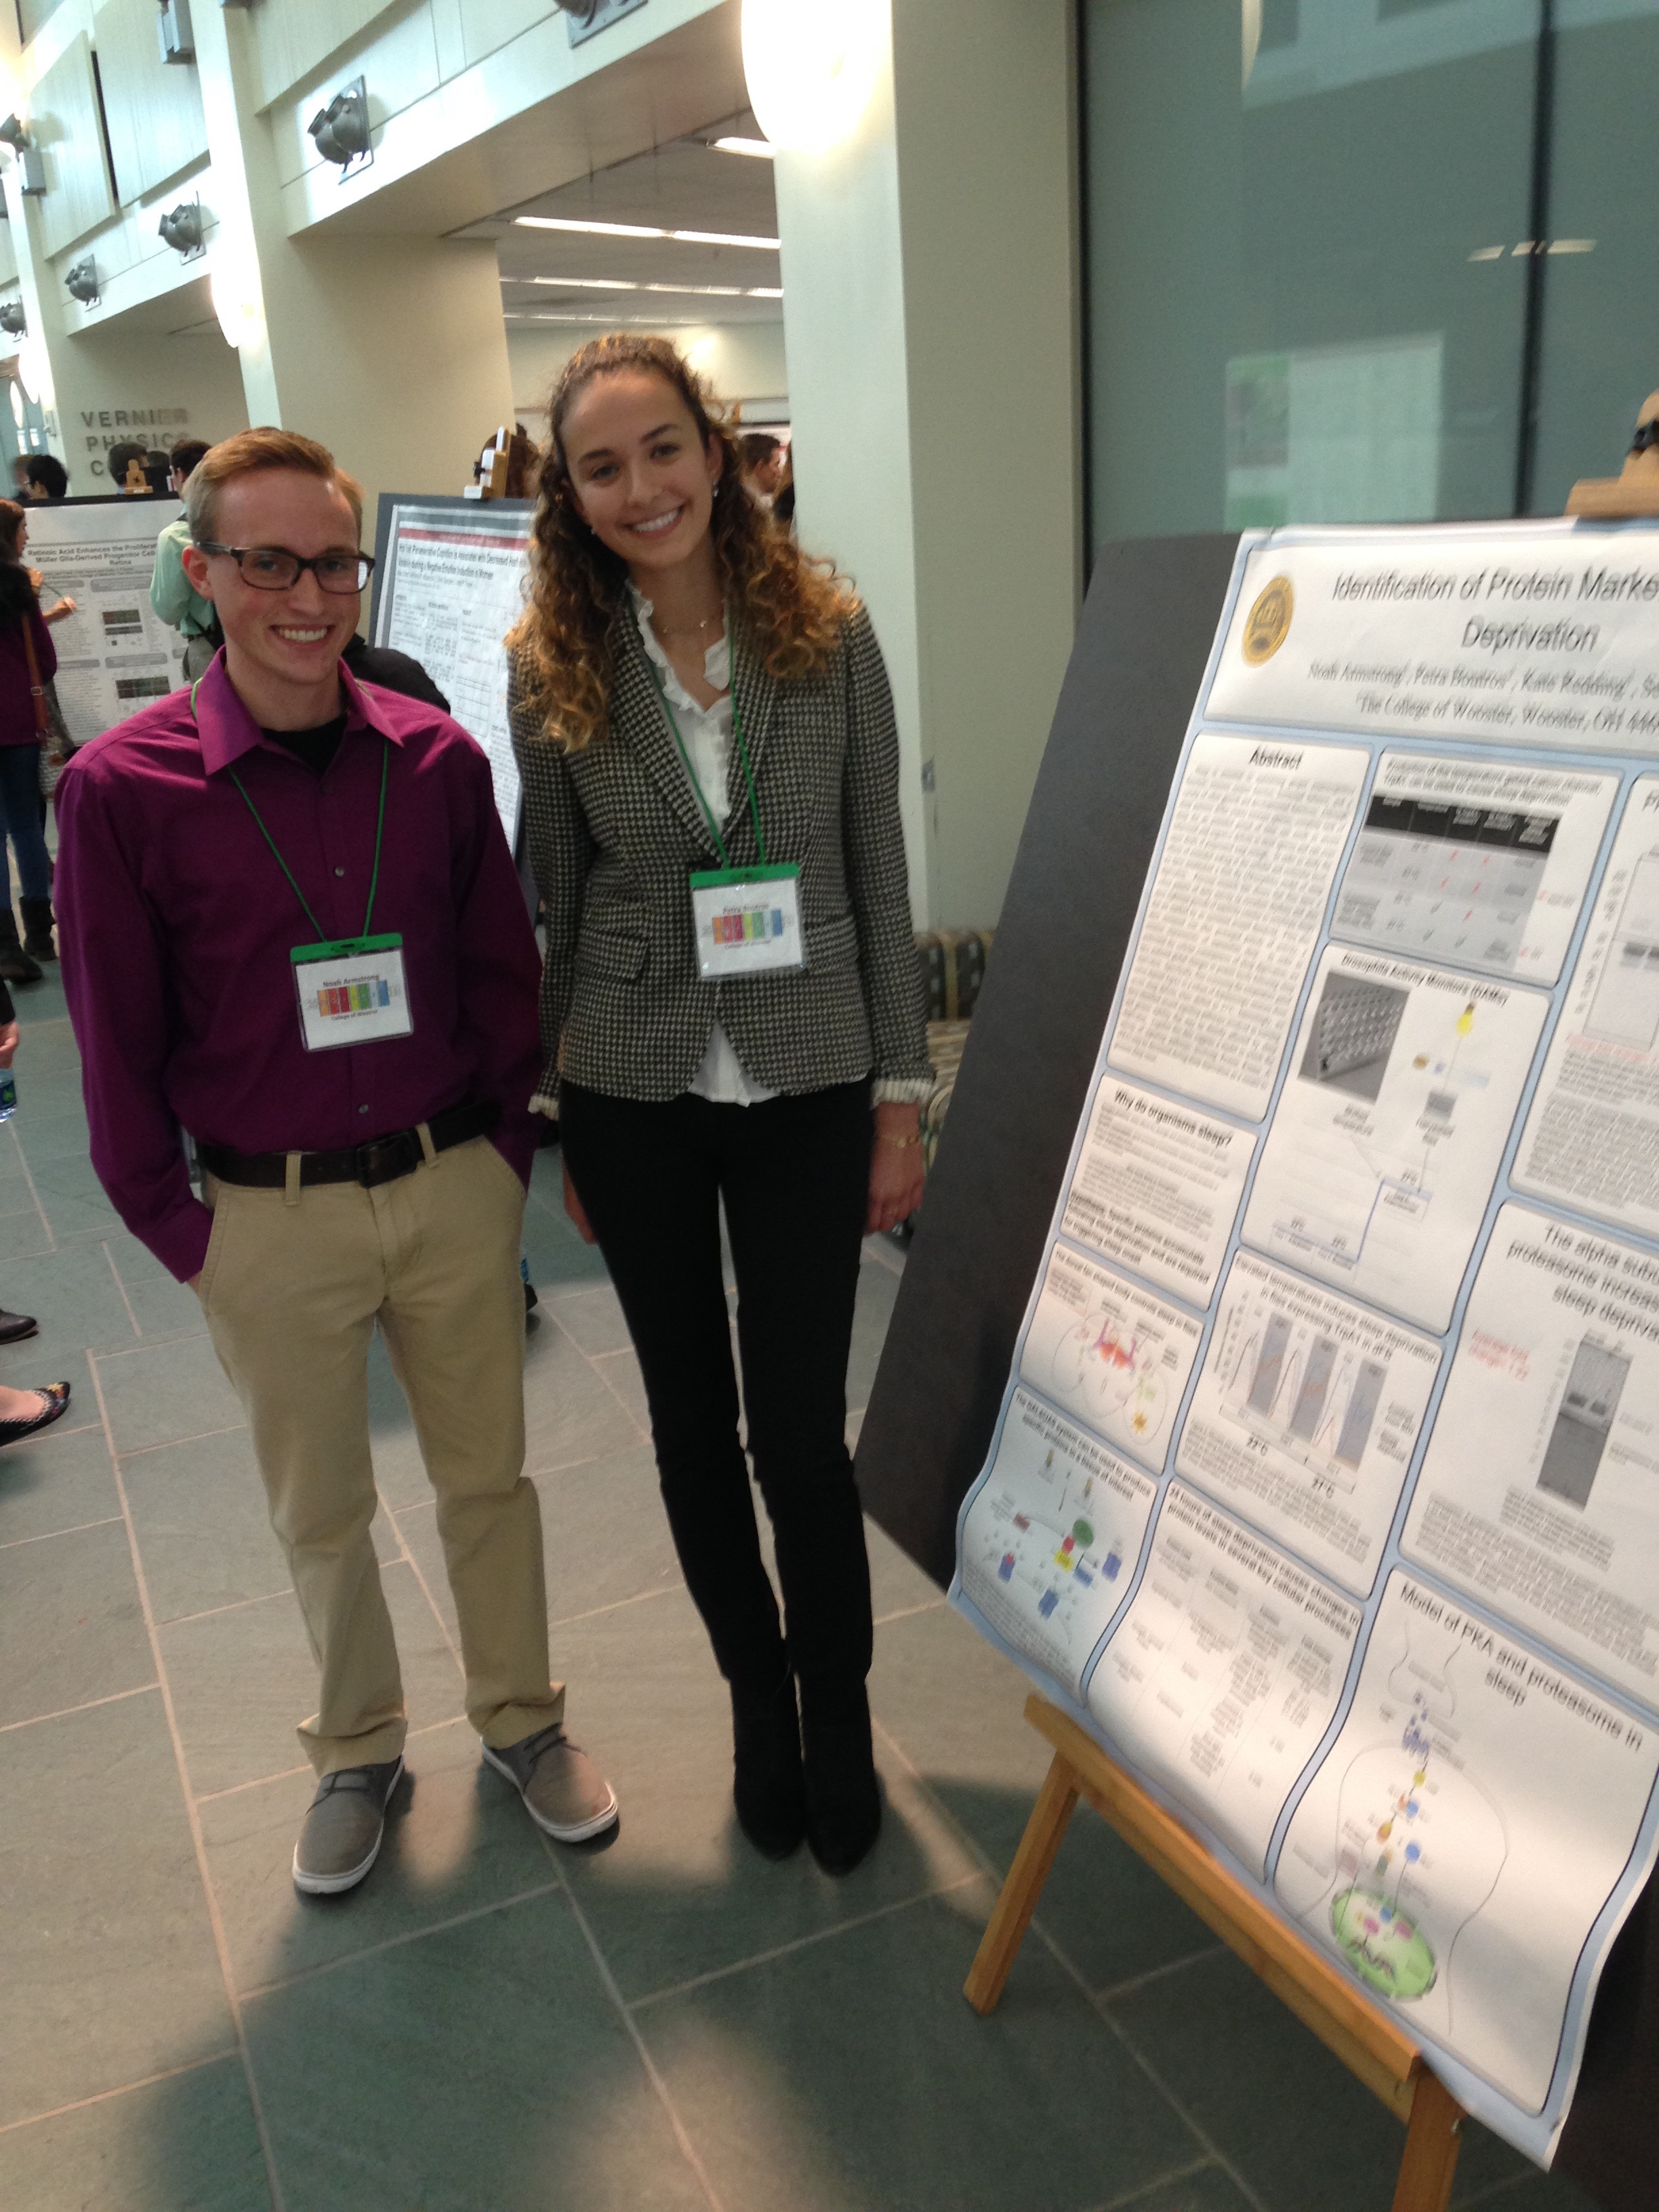 Noah and Petra presenting their joint poster at mGluRs